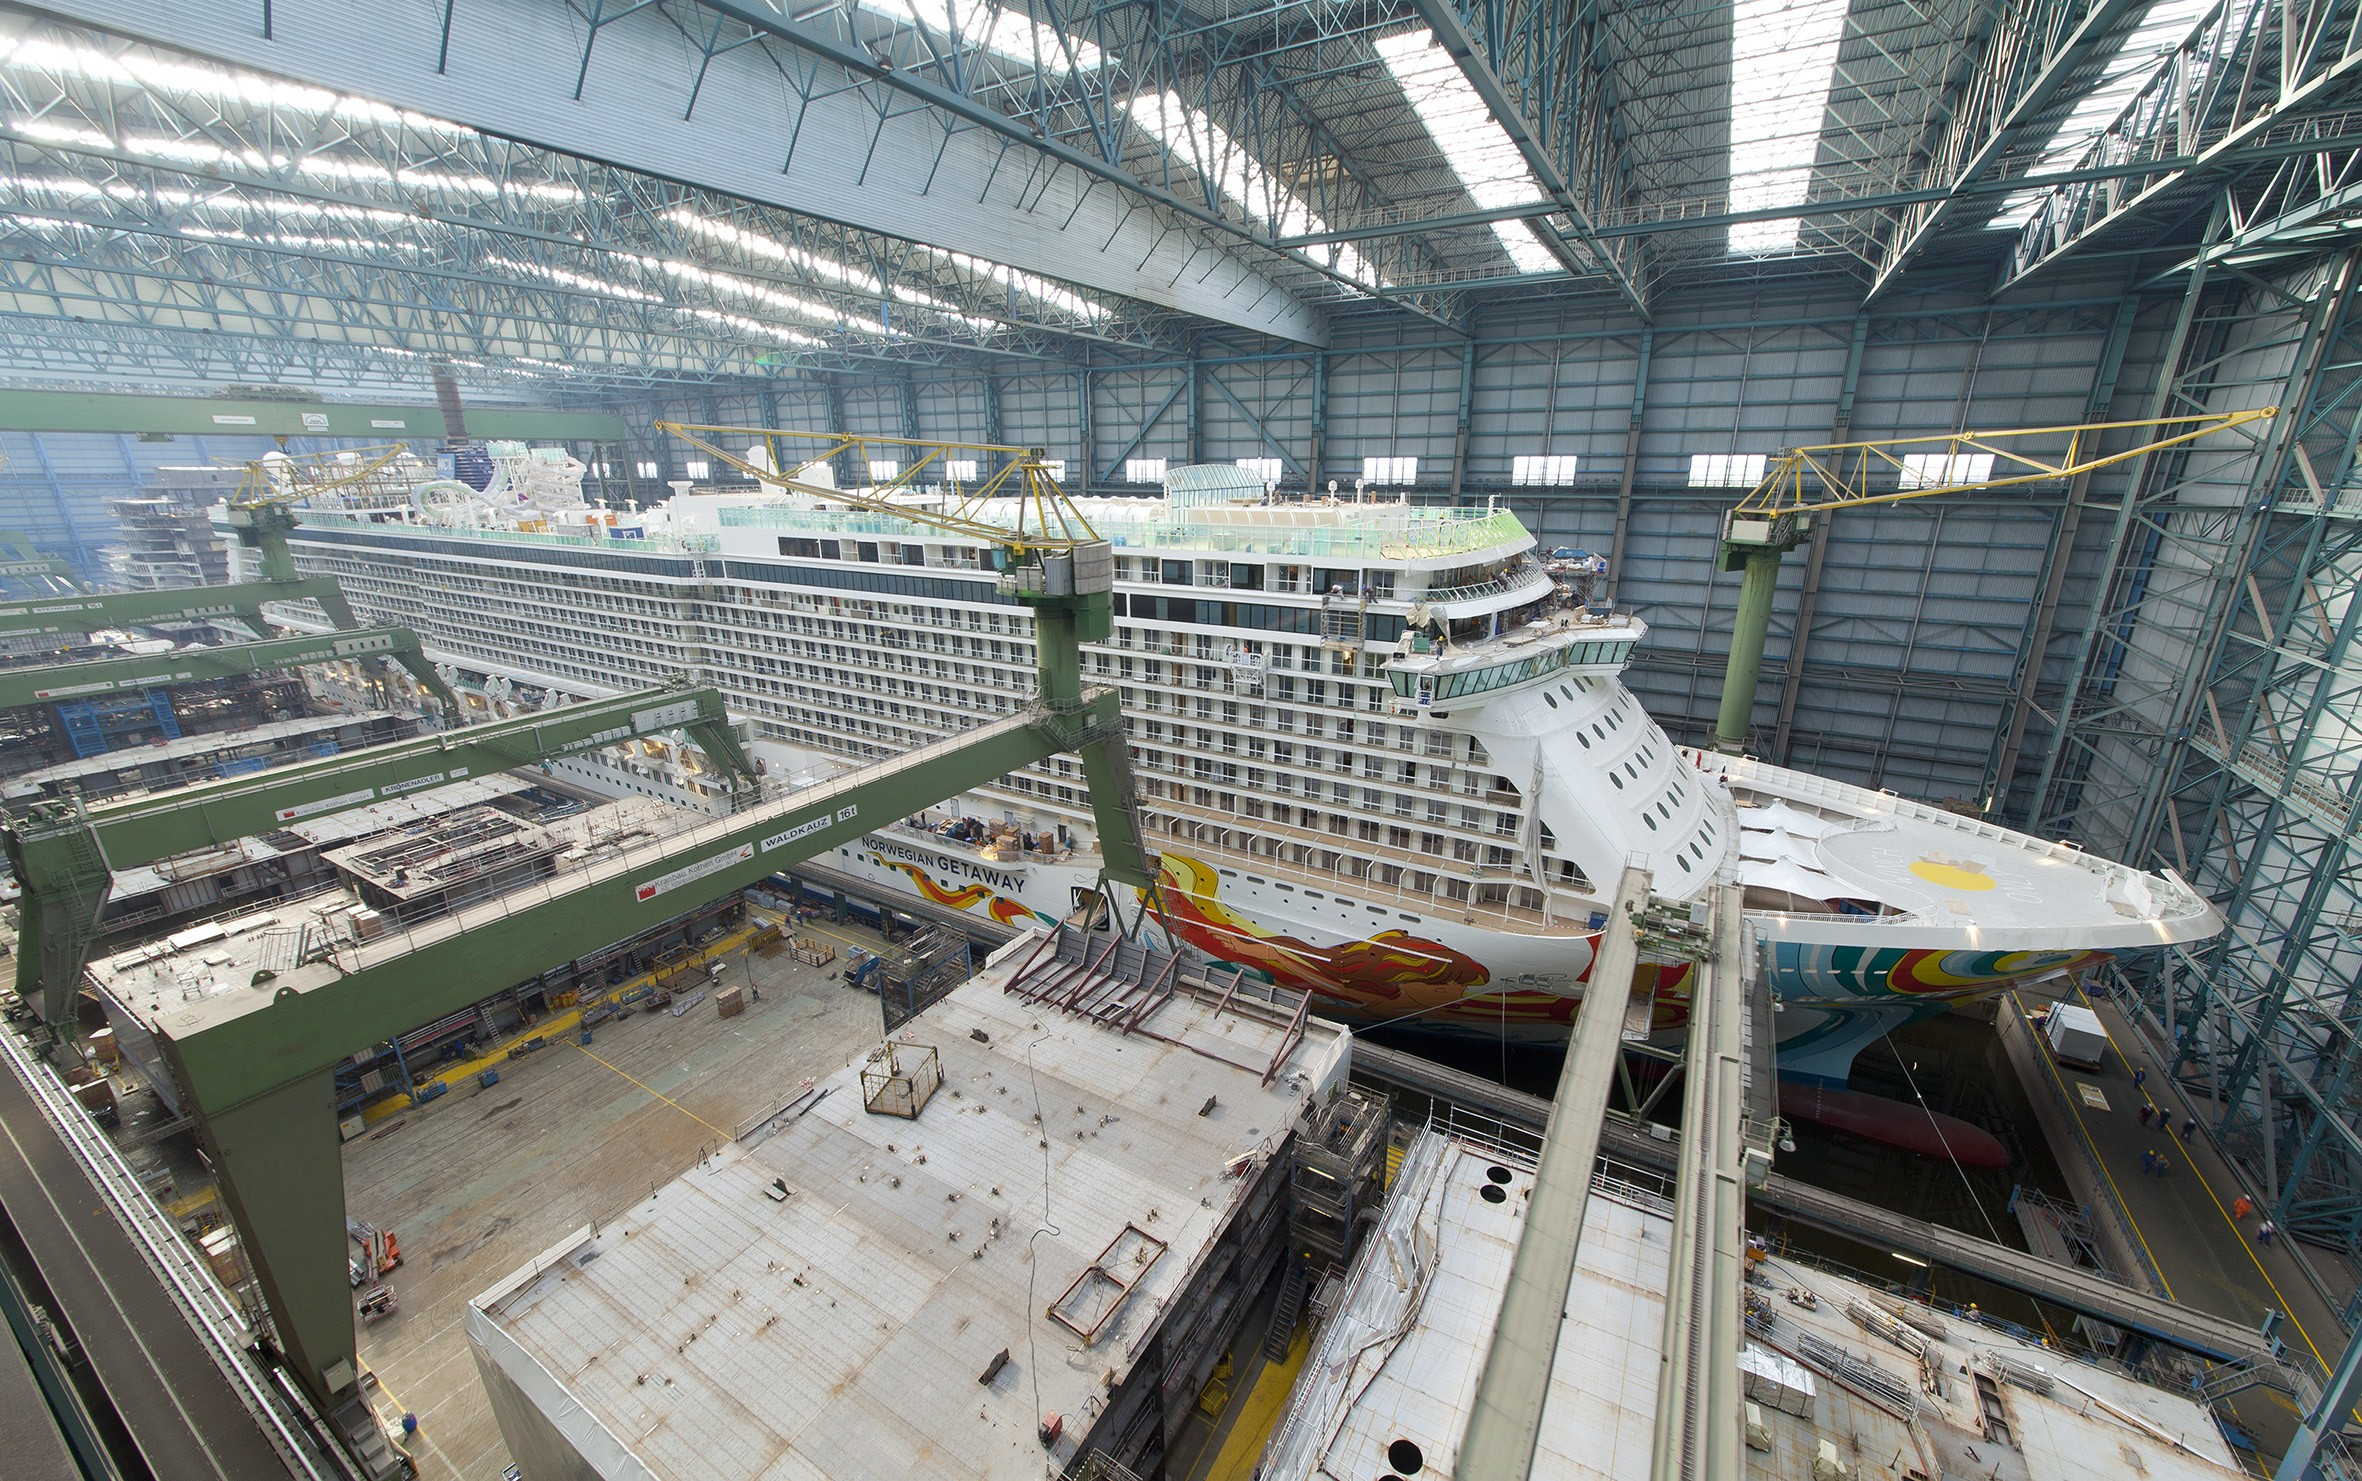 Norwegian breakaway larger than getaway cruiseind for Ncl getaway